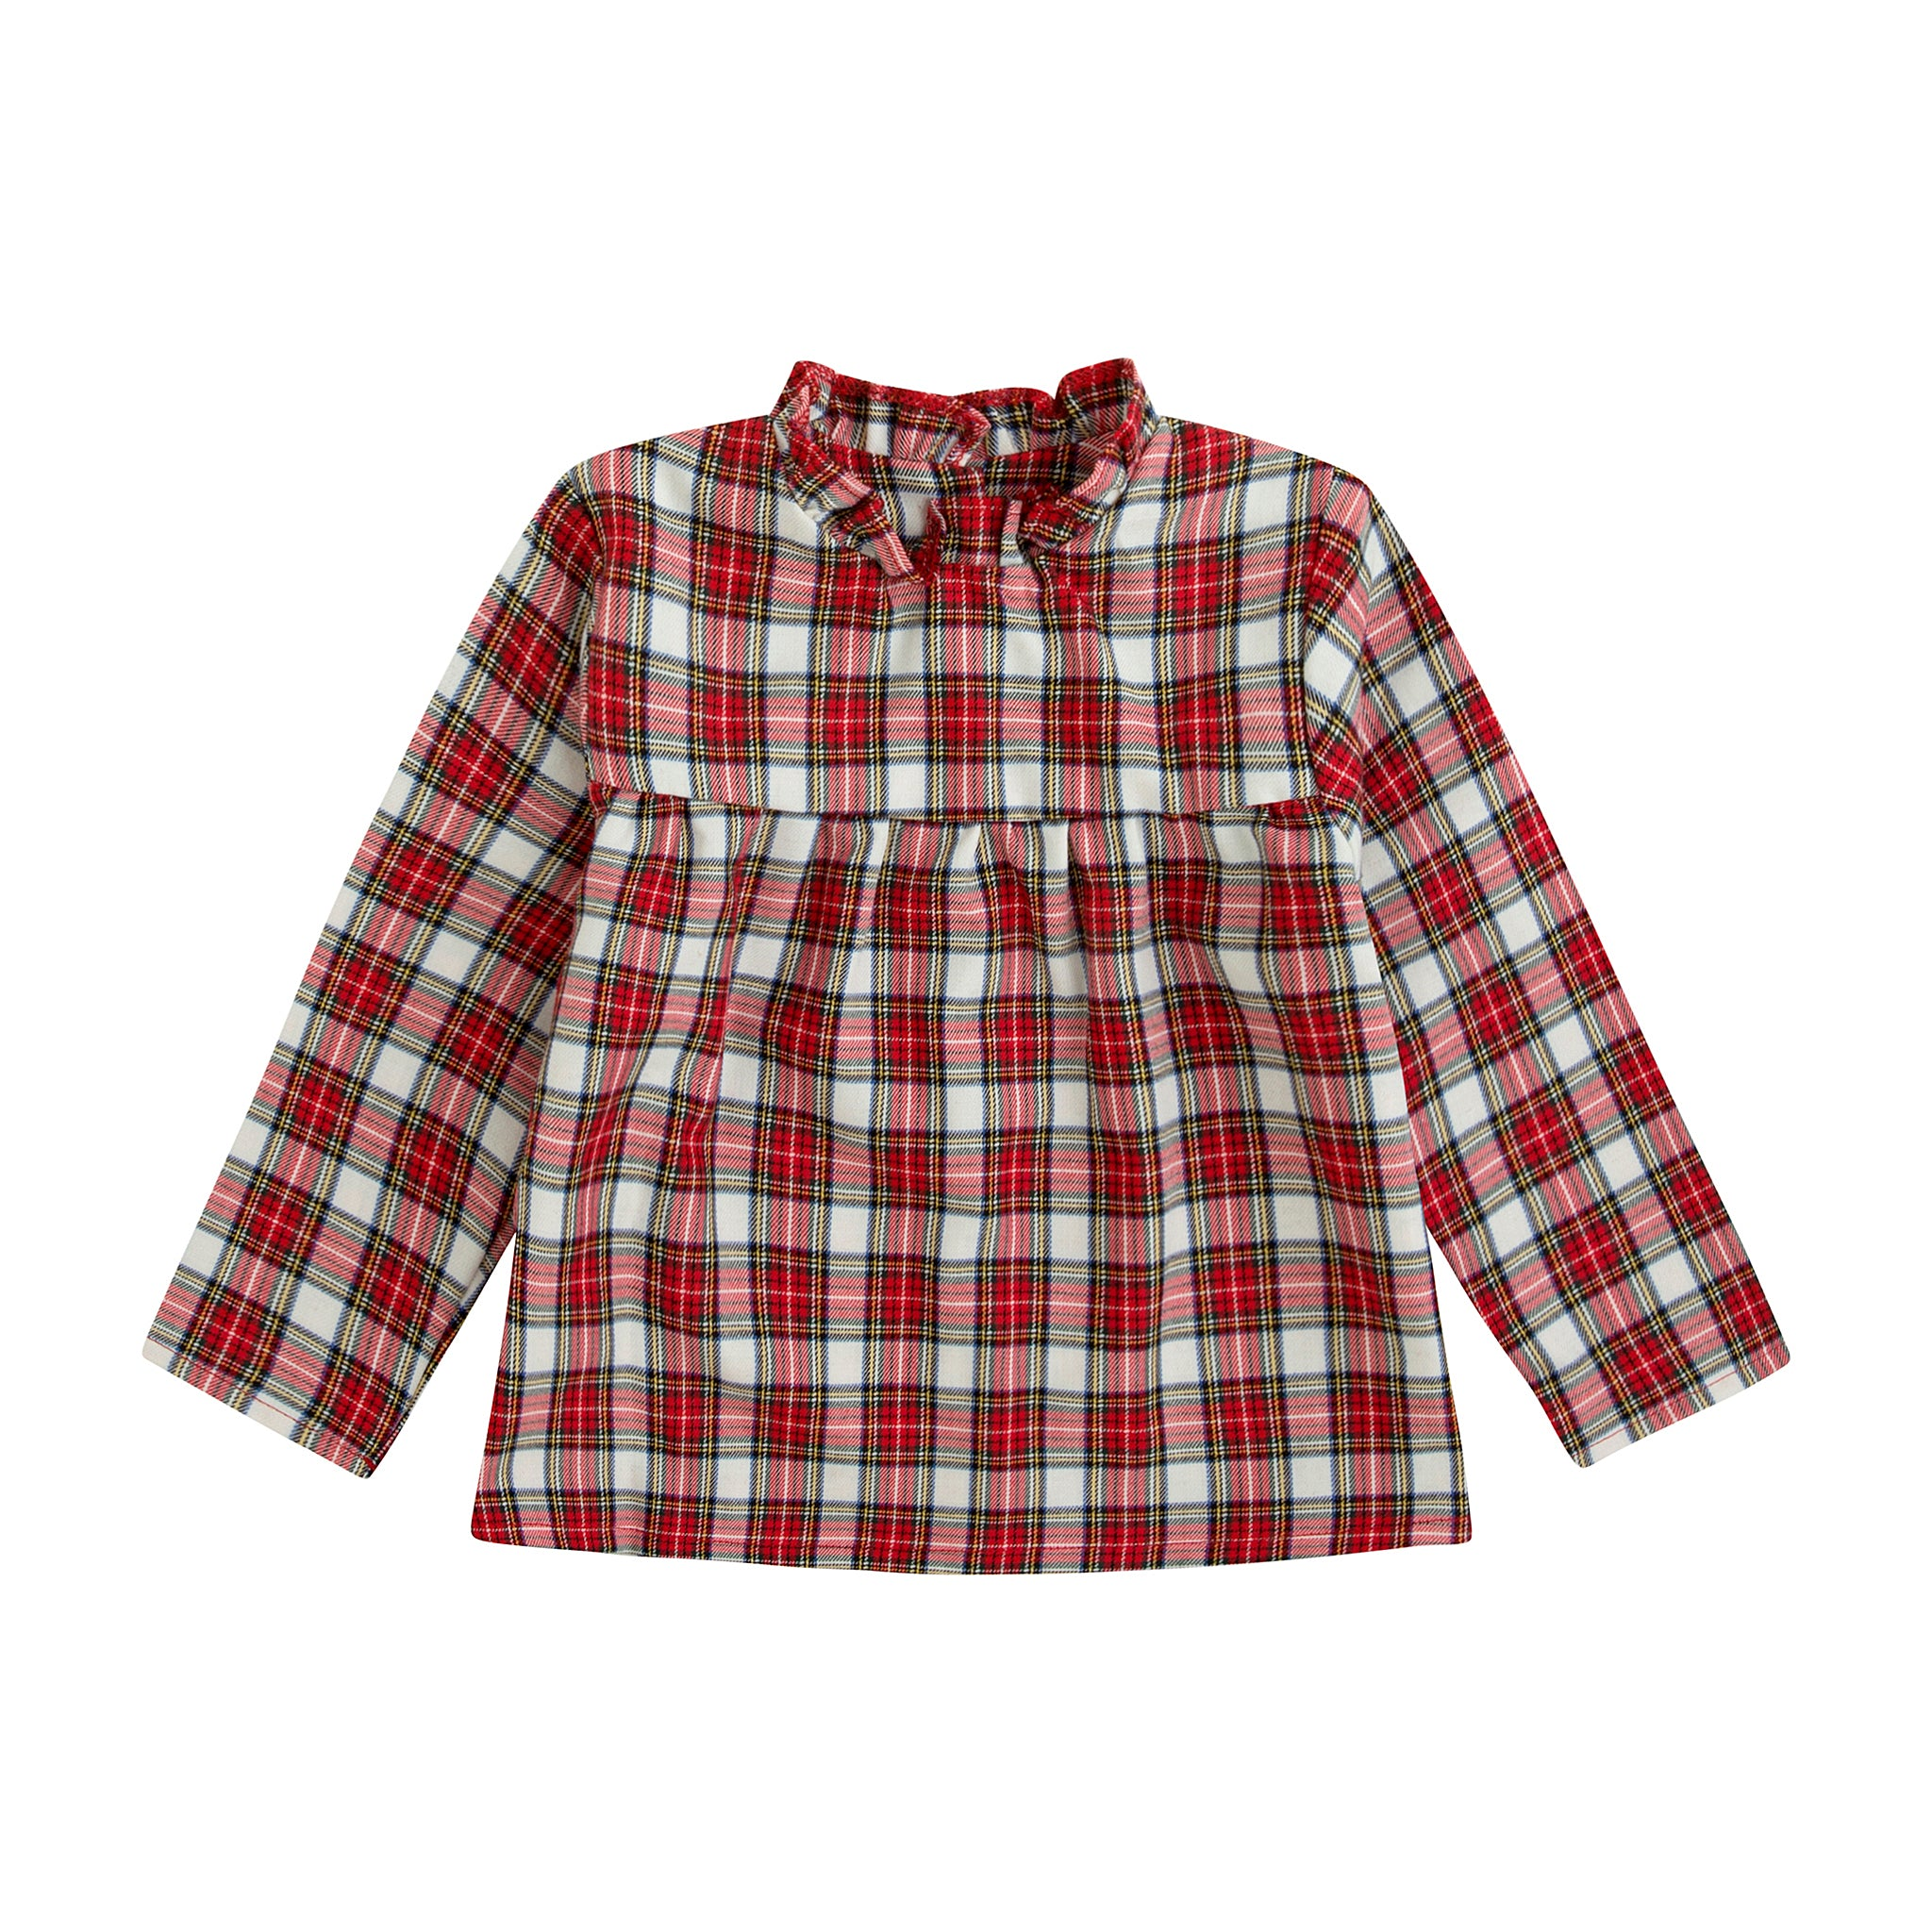 Red plaid print girl's blouse with gathered collar, empire waist and wooden buttons down the back